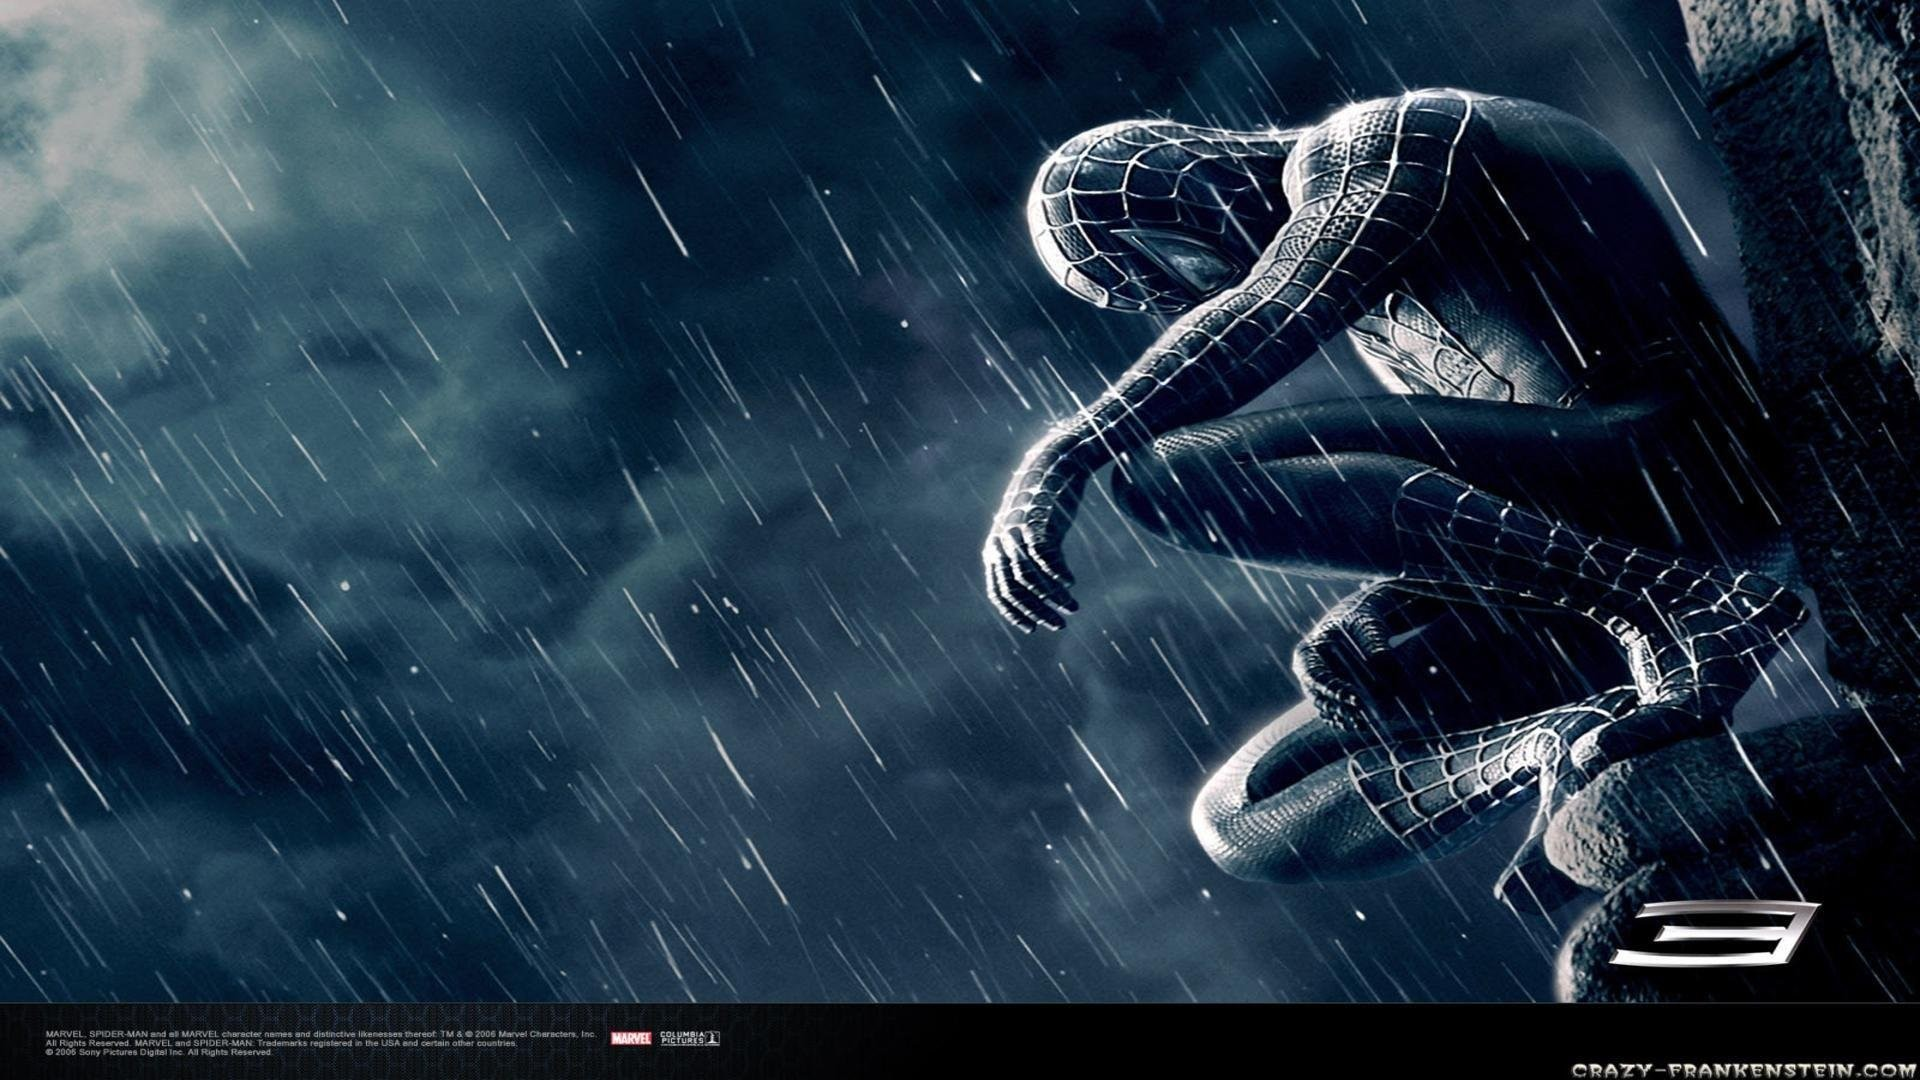 Spiderman 3 Hd Wallpapers 1080p: Spider Man 3 Wallpapers (64+ Images